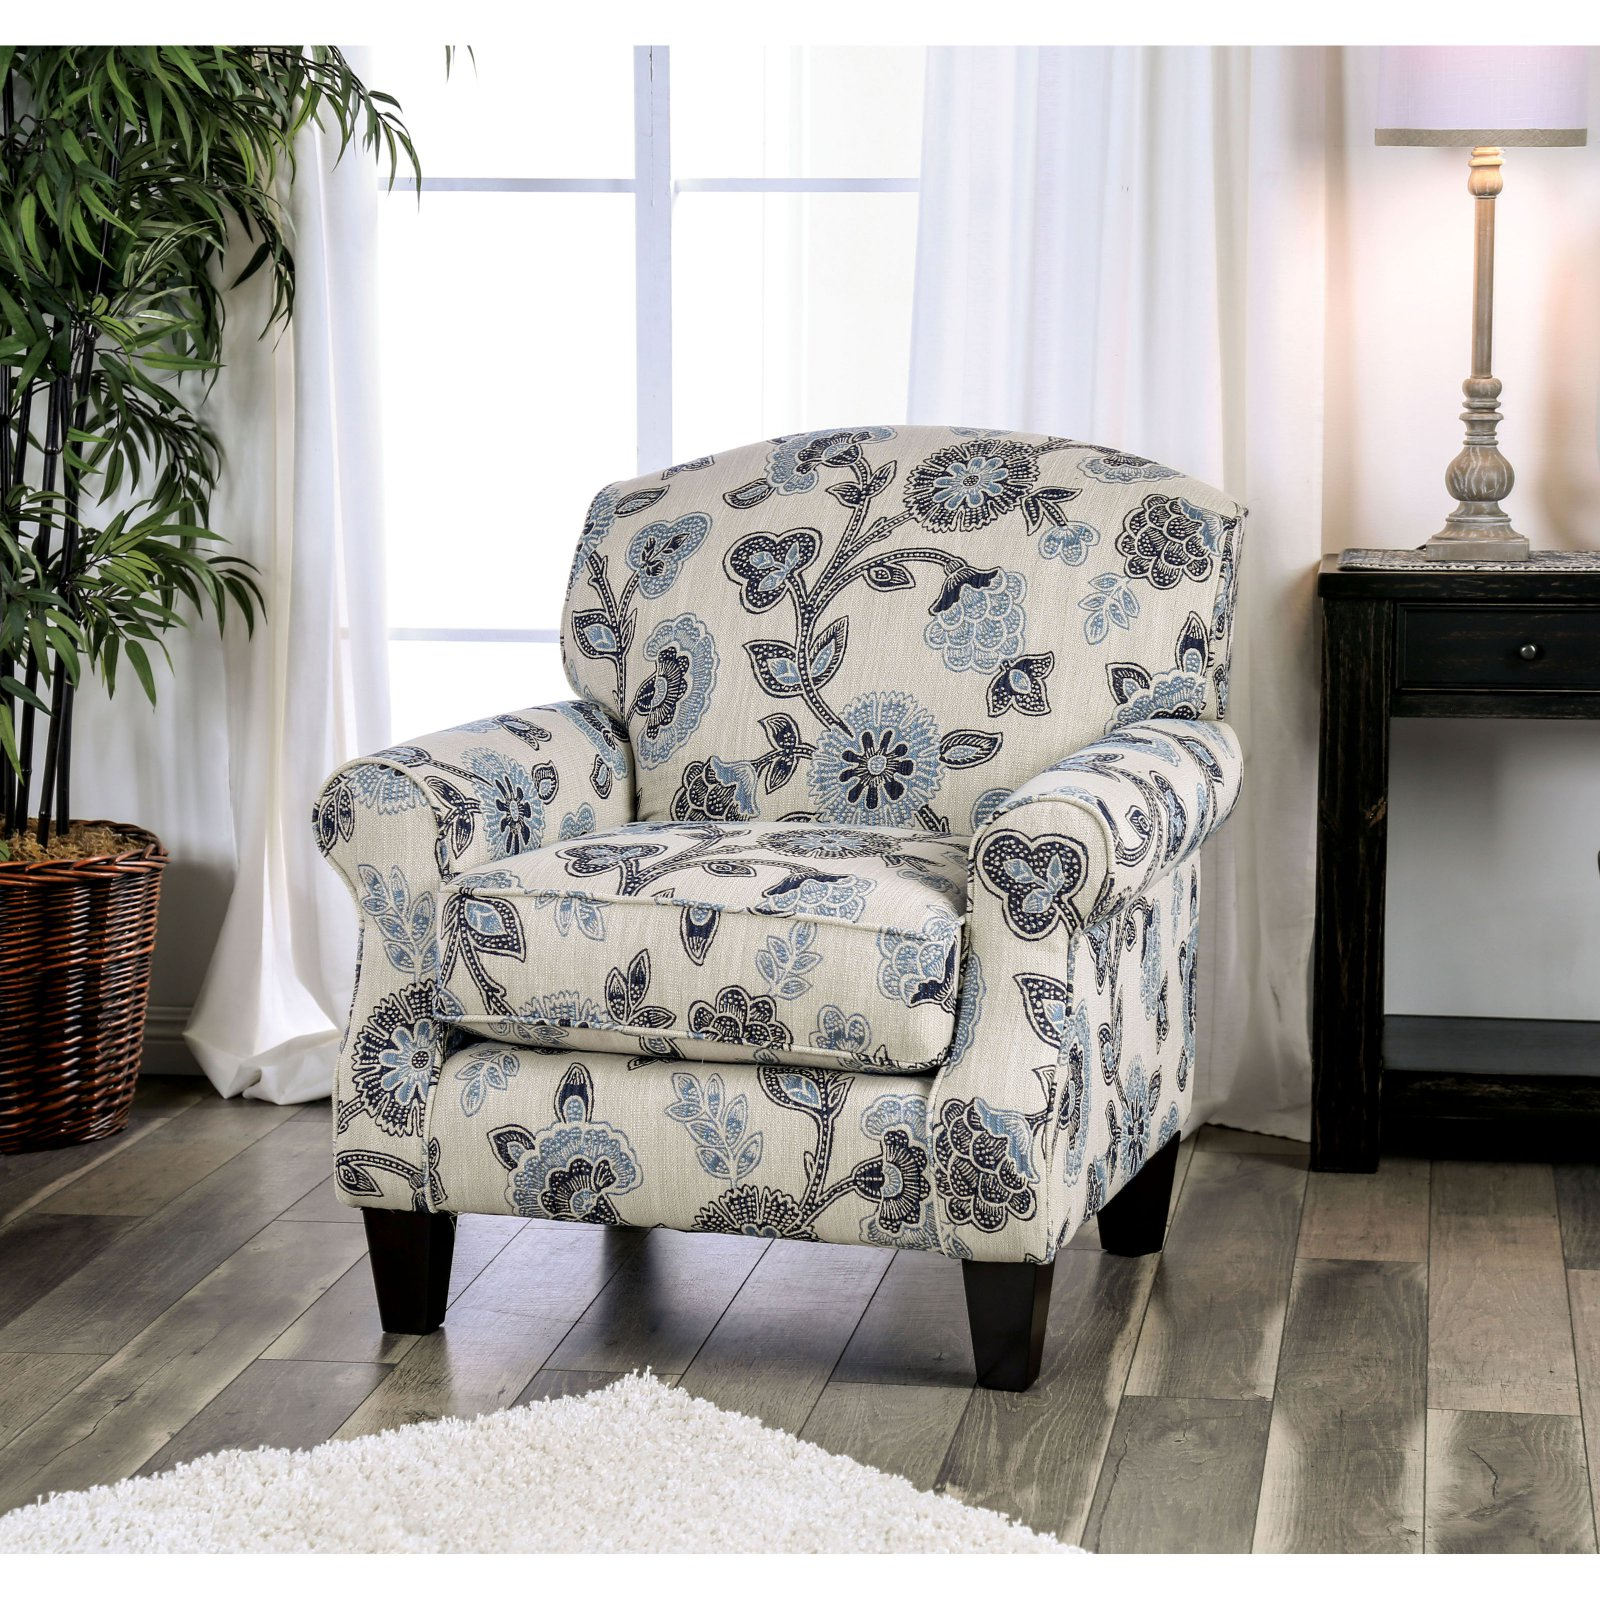 Picture of: Furniture Of America Deveraux Floral Arm Chair Walmart Com Walmart Com